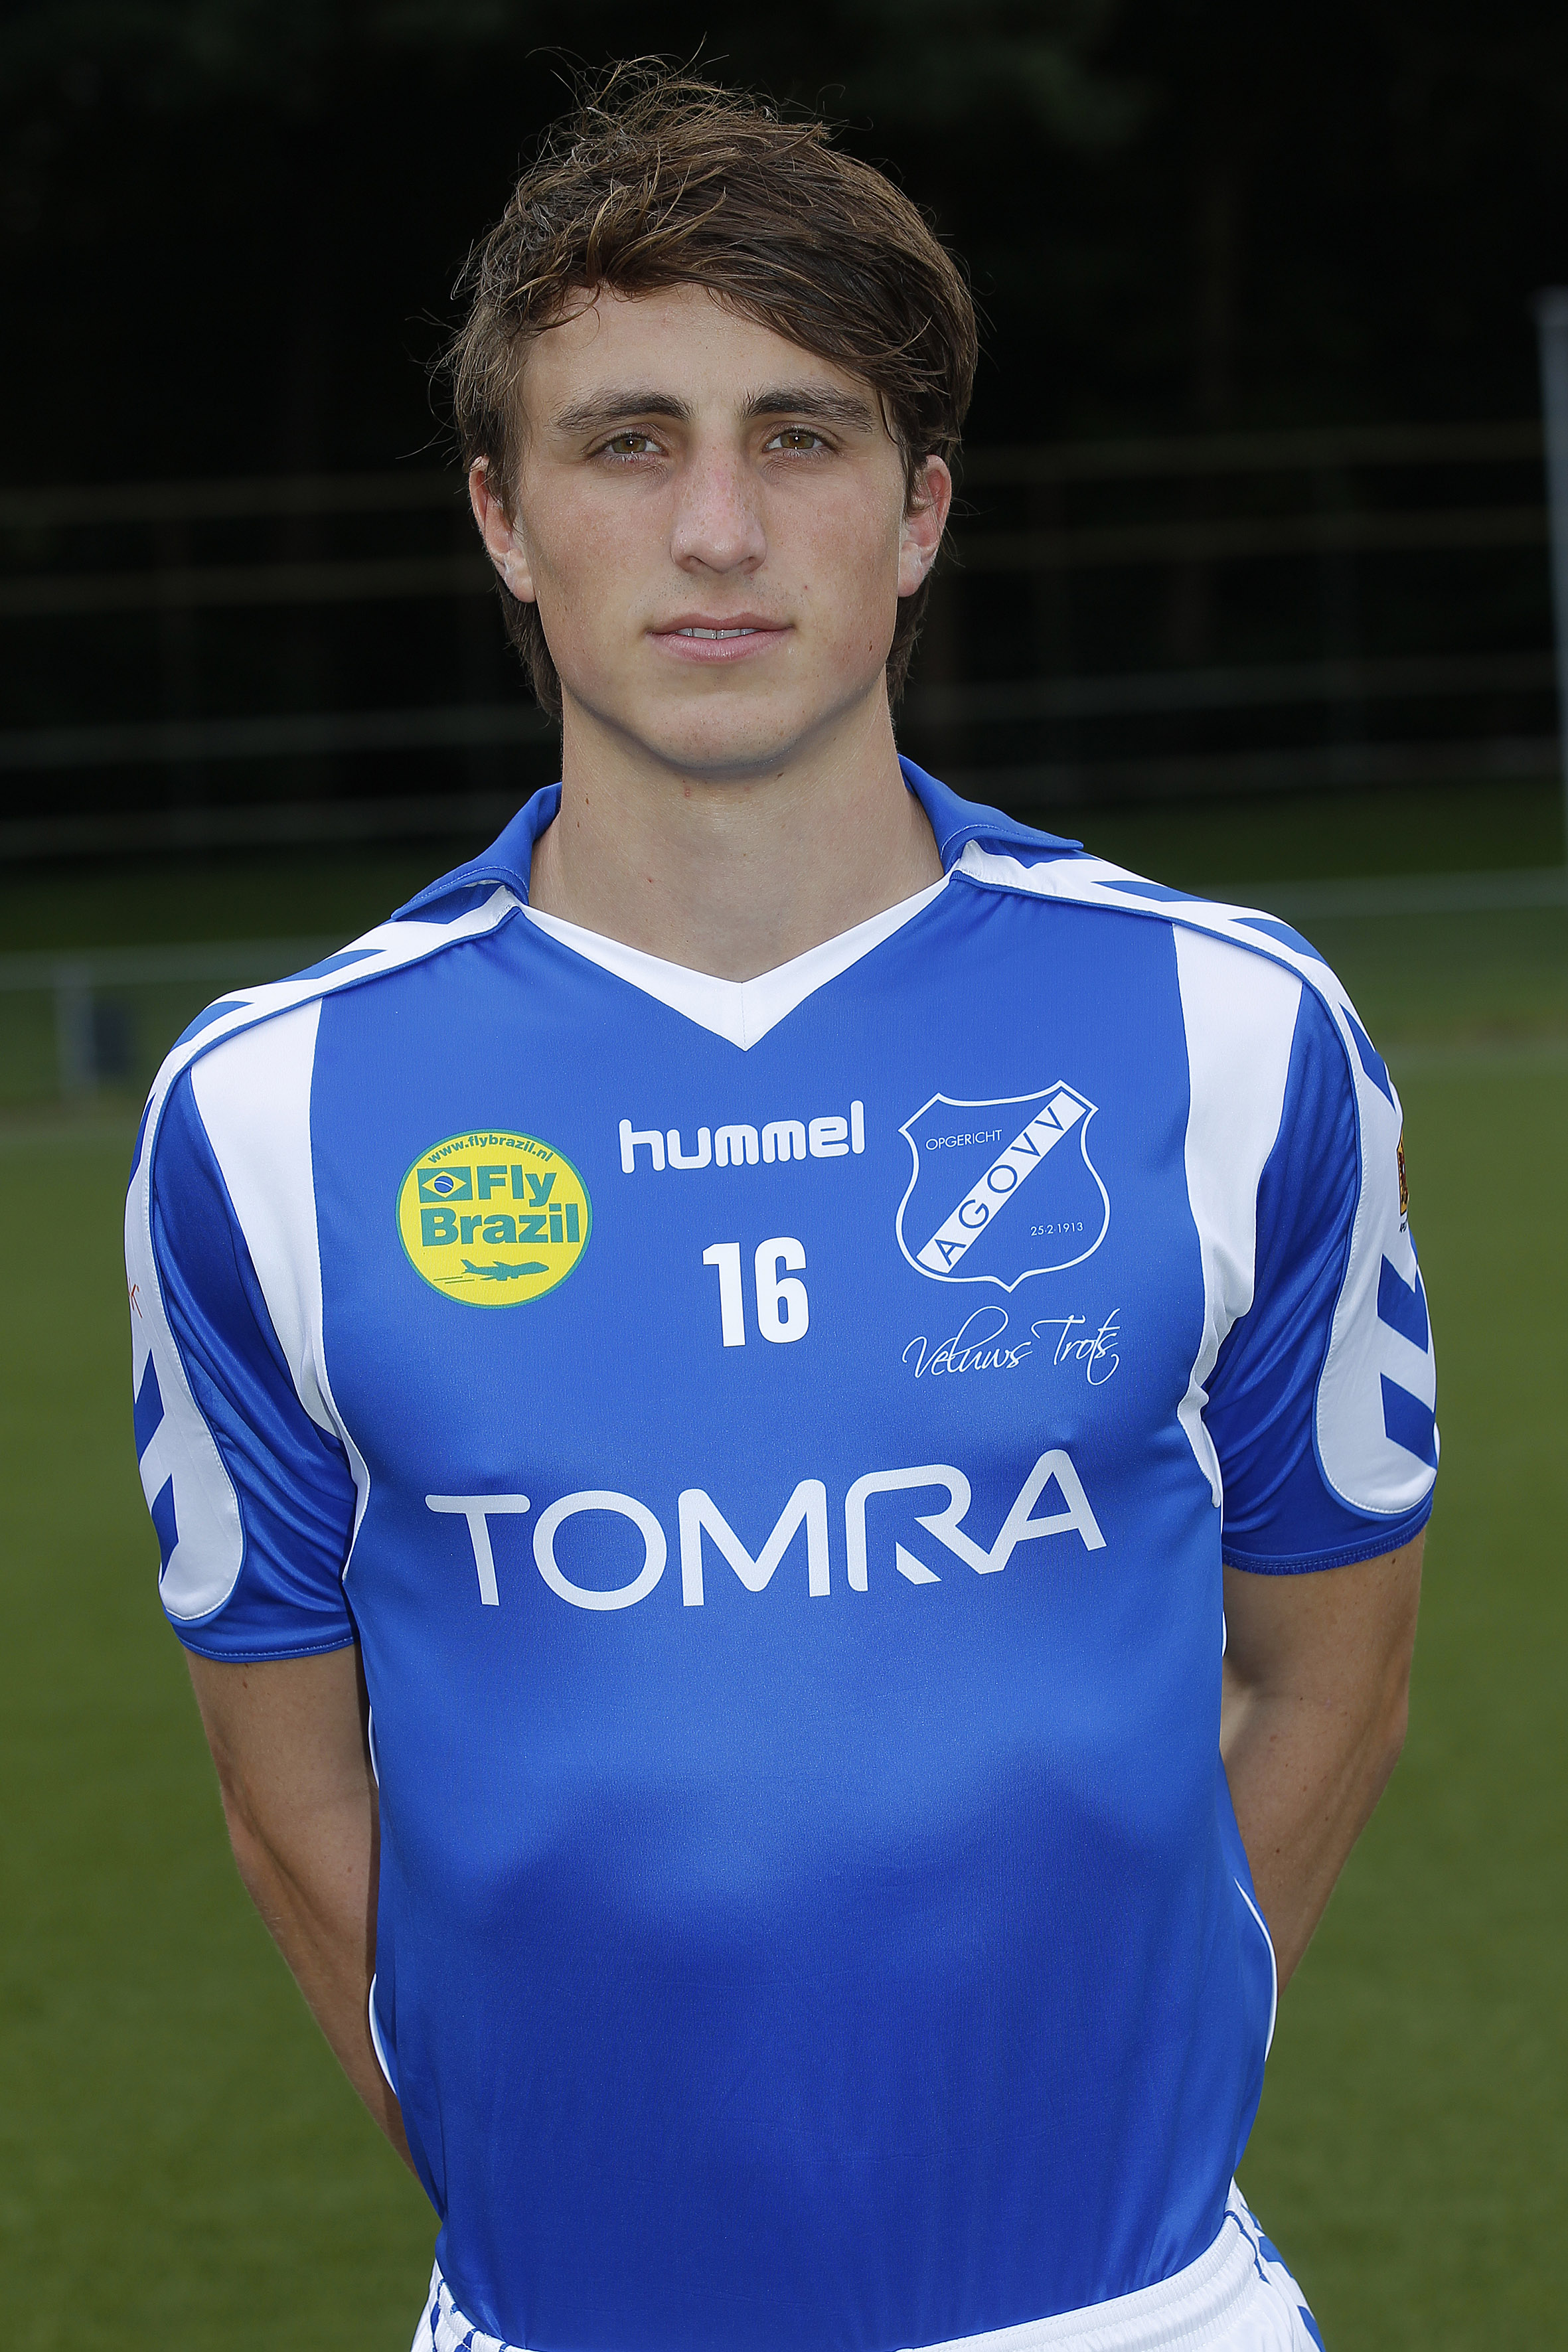 Tim receveur career stats height and weight age - Netherlands eerste divisie league table ...